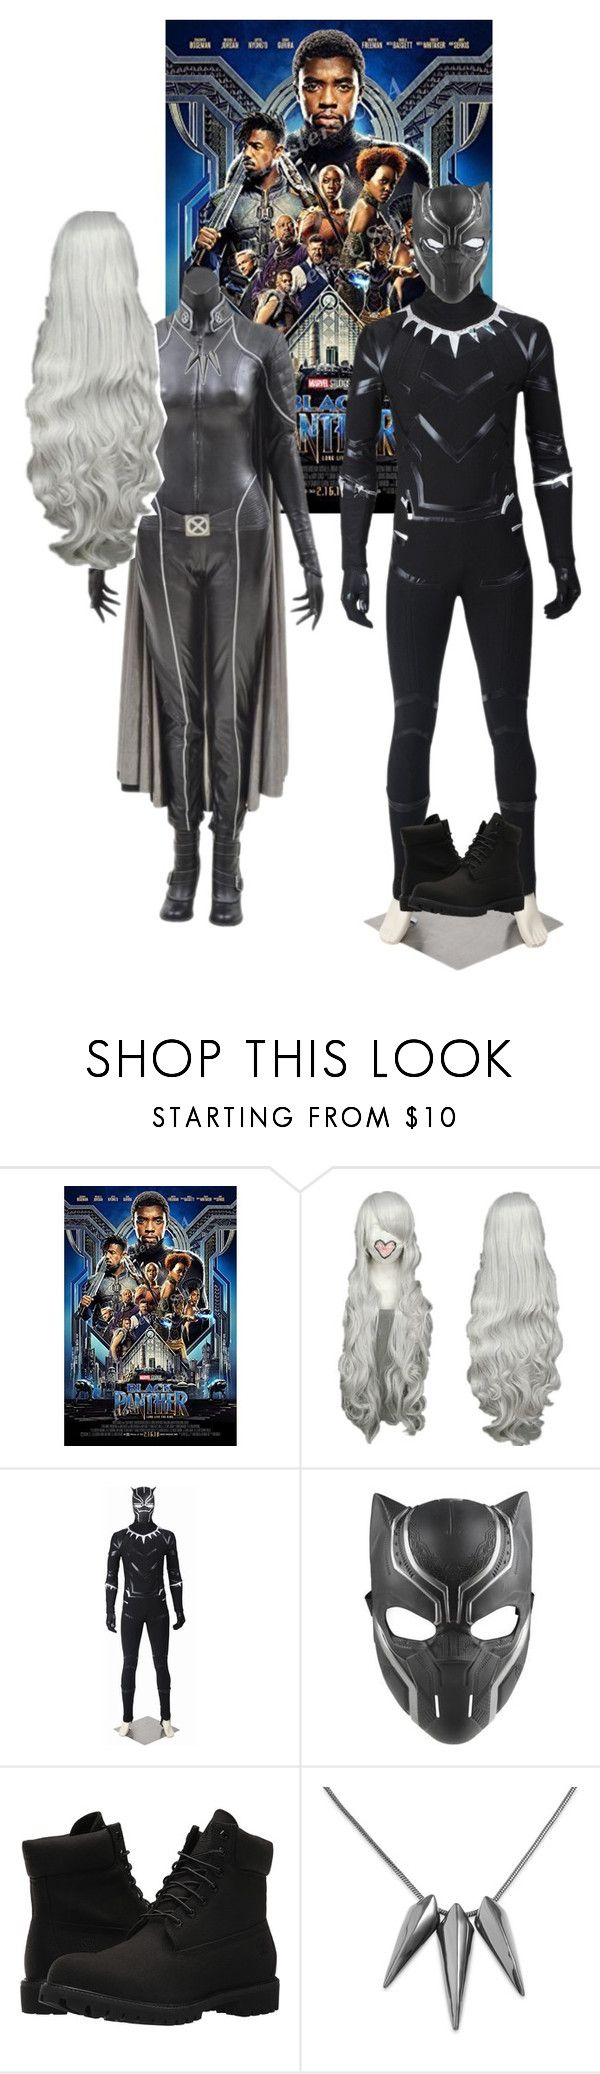 """""""Couples cosplay movie outing: Black Panther"""" by cat-anaya ❤ liked on Polyvore featuring Marvel and Timberland"""